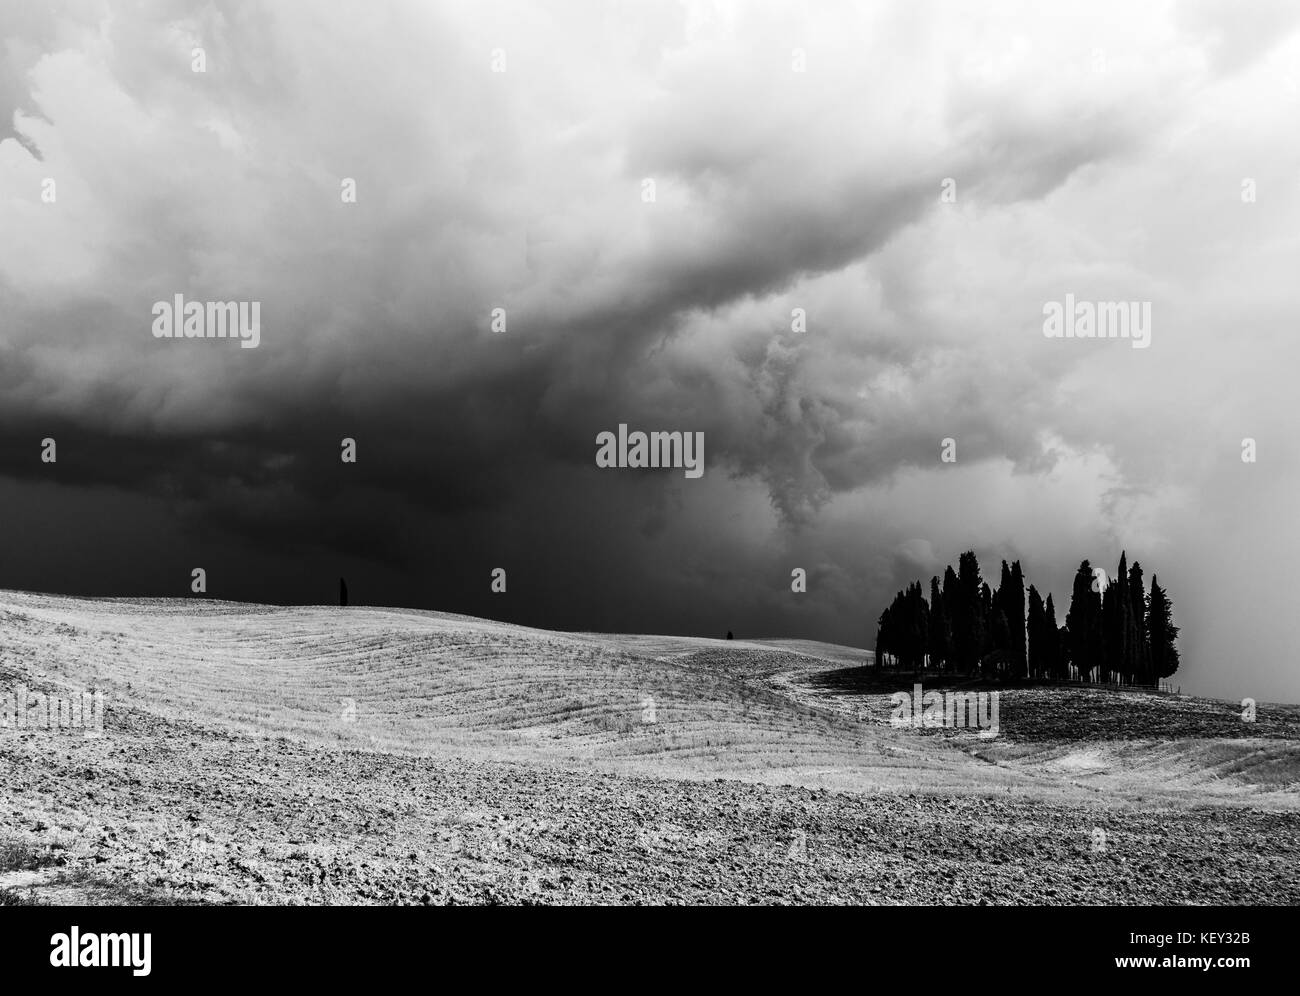 An isolated group of cypresses over an hill and beneath an overcast, moody sky - Stock Image